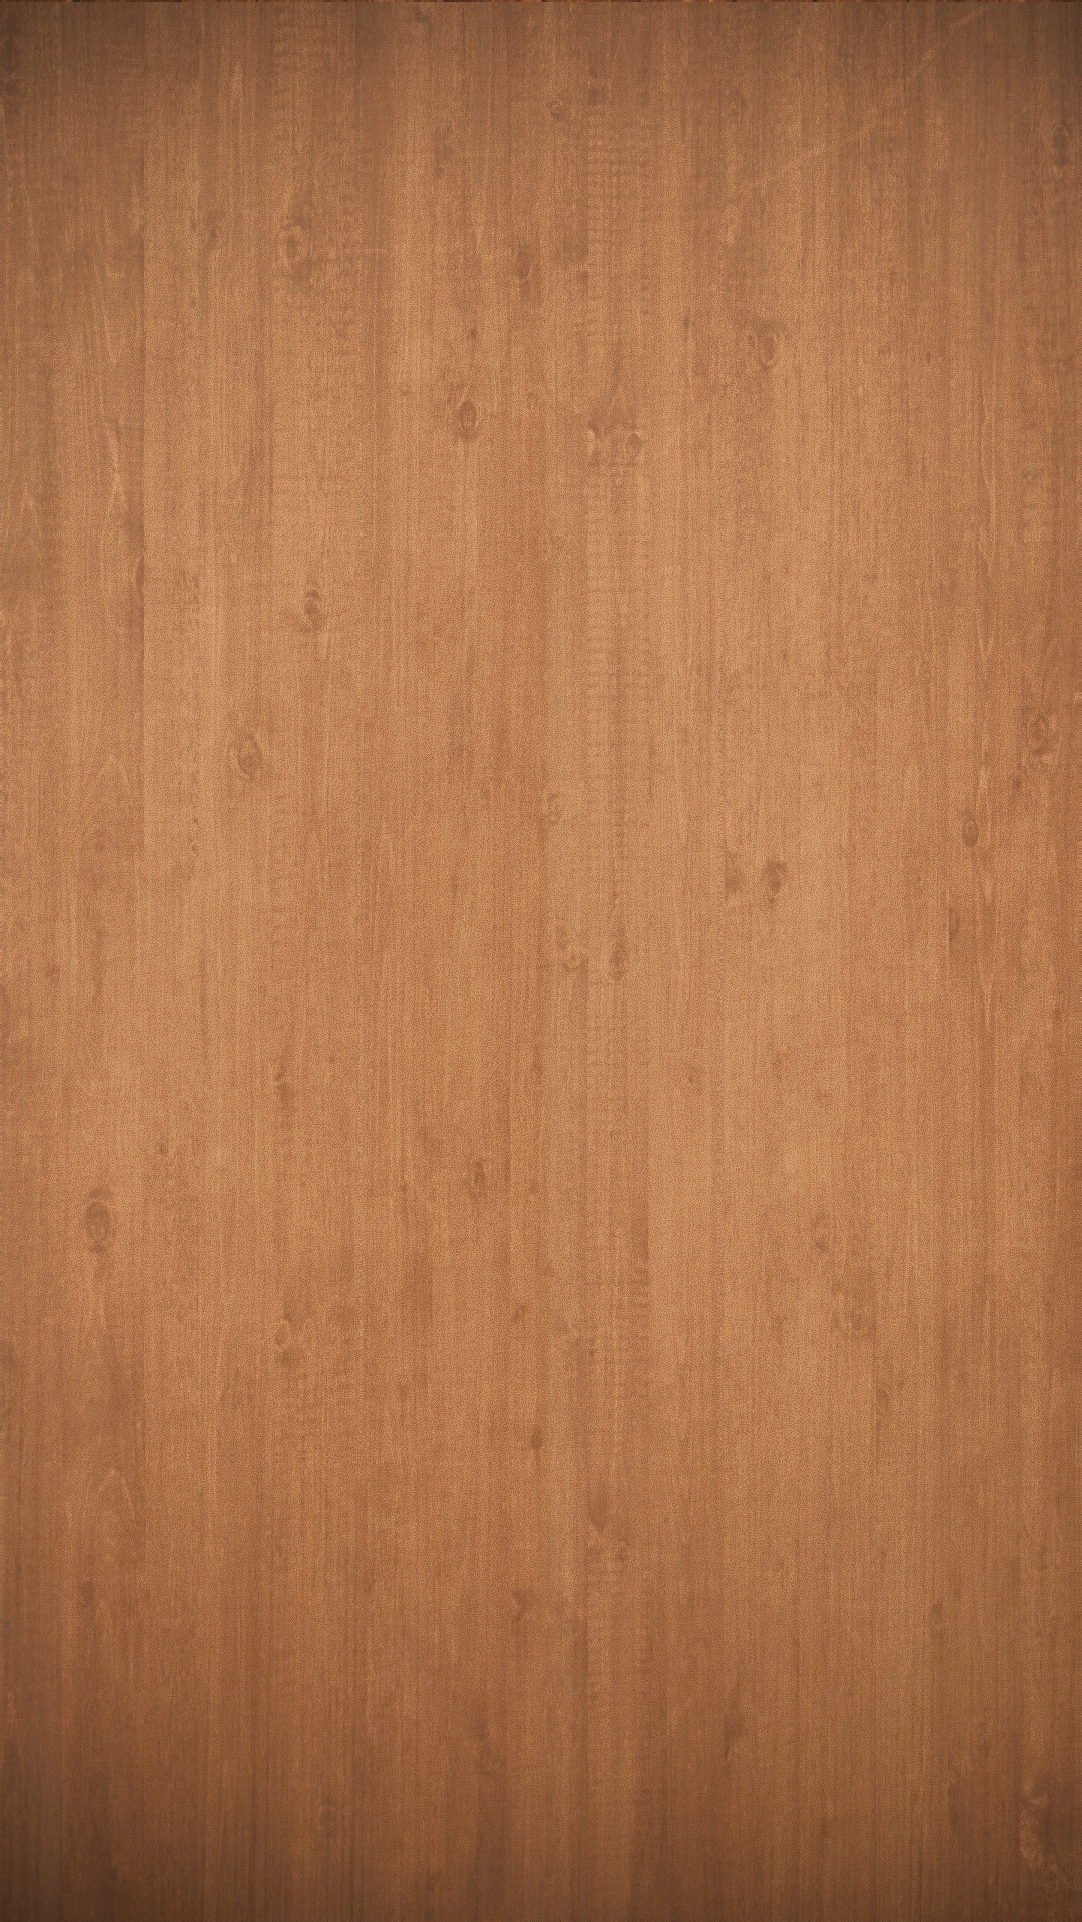 smartisan_theme_dark_wood.png